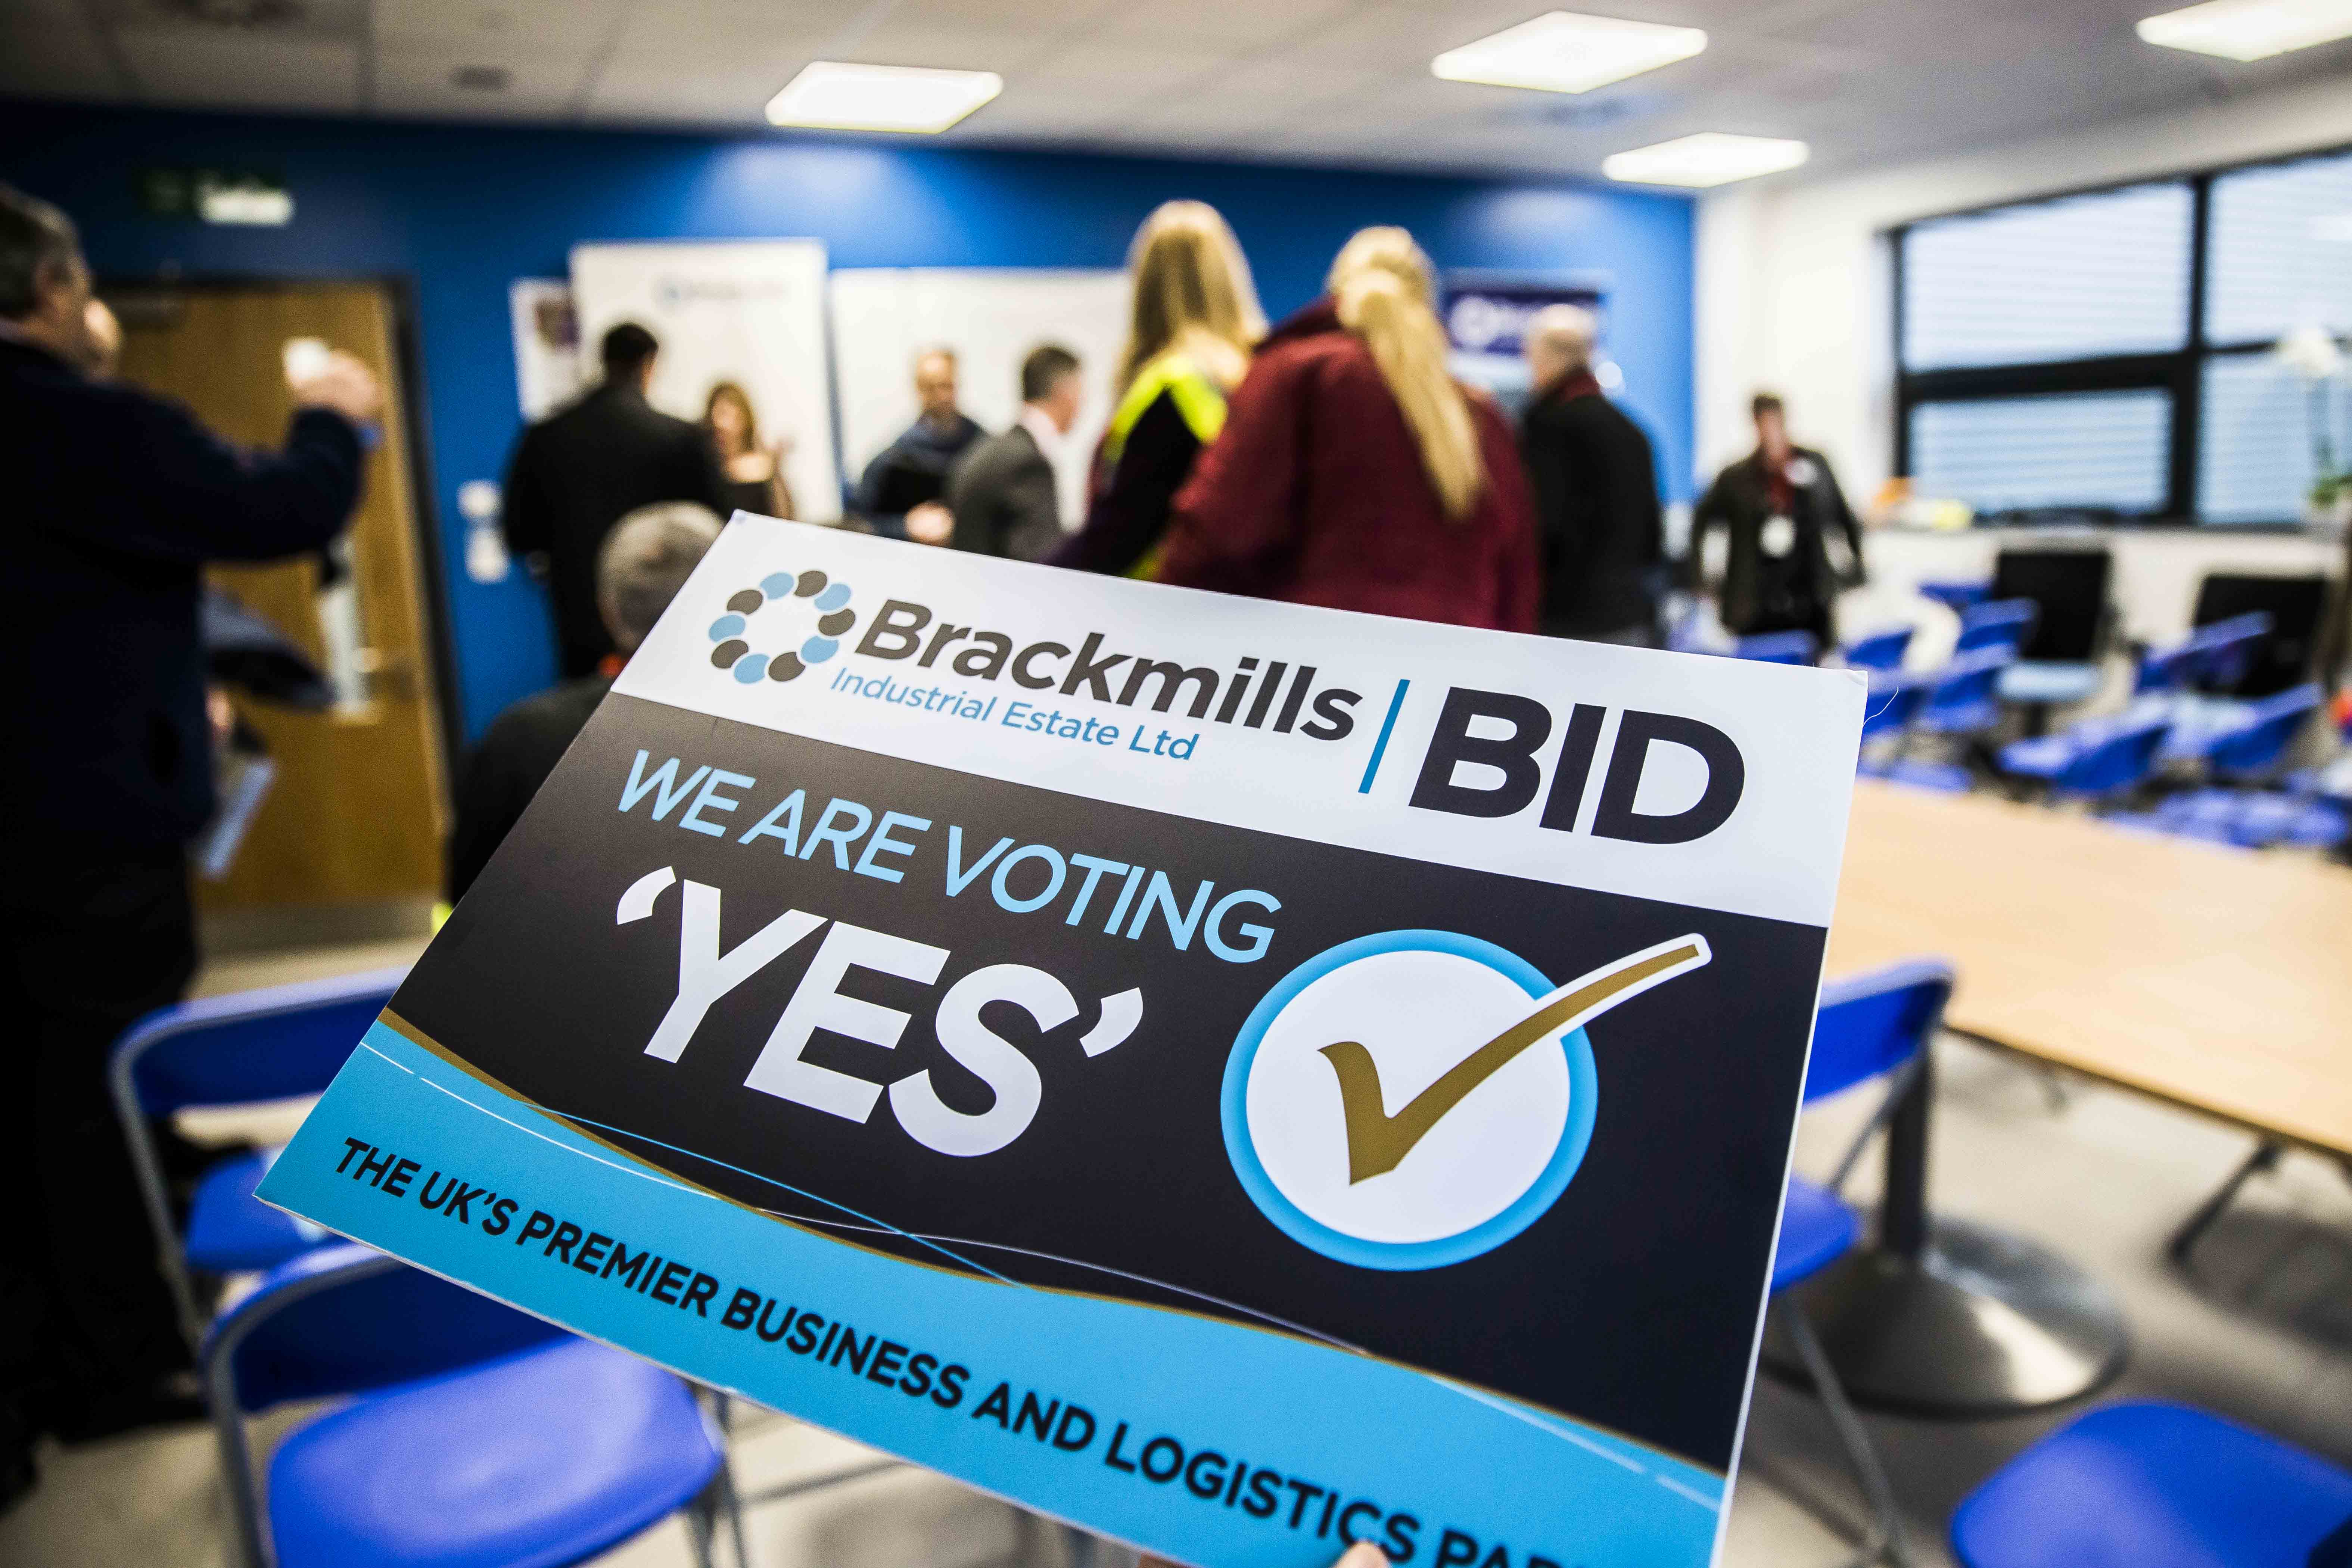 Brackmills Open Meeting Our After Hours Business Event